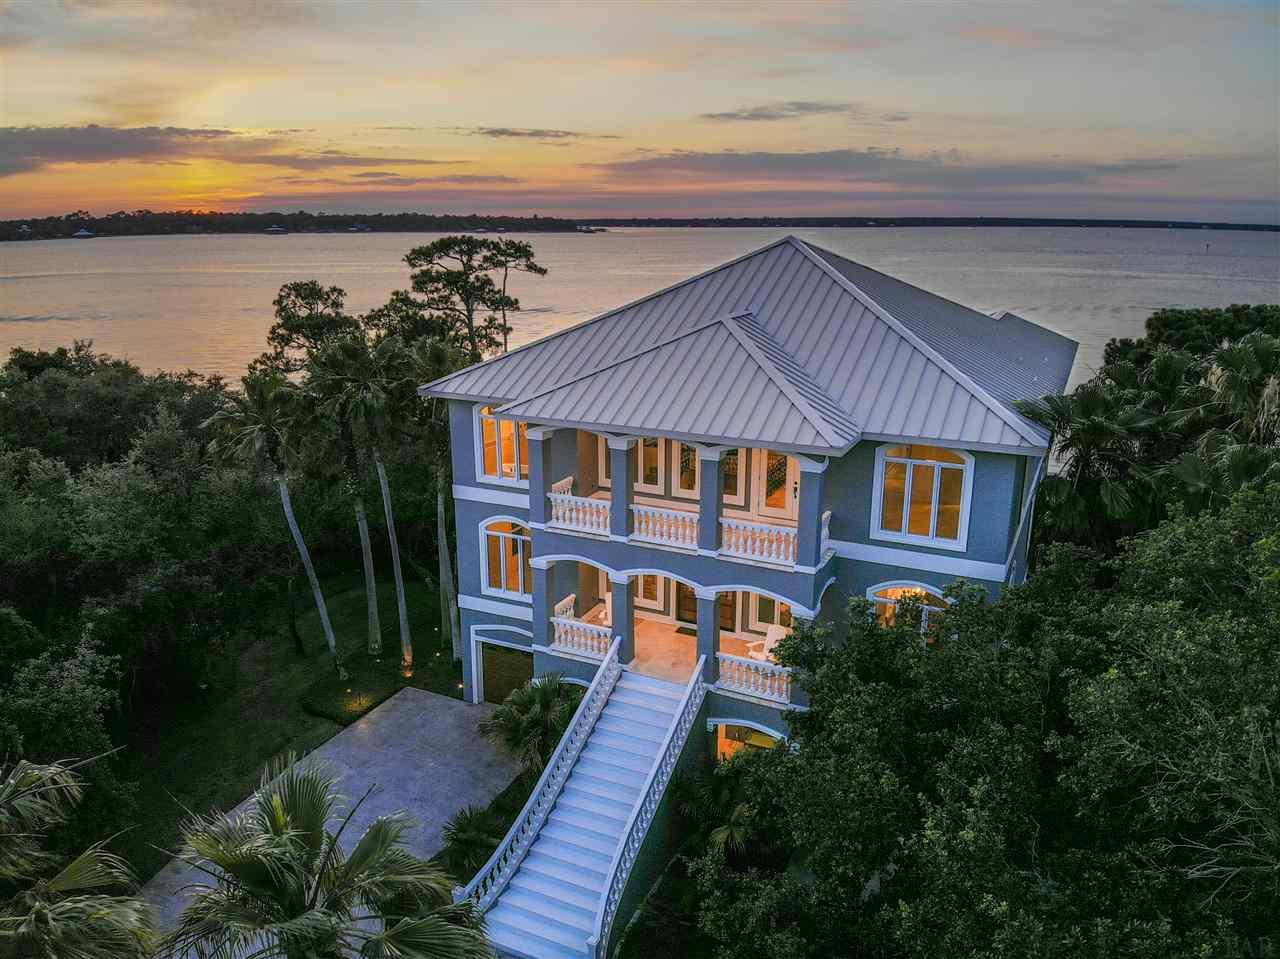 Home of distinction and luxury with the most phenomenal expansive views of Bayou St. John – This newly remodeled 6000+ square foot 5-bedroom 5.5-bath home the exclusive, upscale coastal neighborhood of Ono Harbour offers everything one would want on Ono Island with unbelievable upgrades far beyond what one would expect. Loper Construction built & then refurbished this exquisite home over the last year & the timeless elegance & beauty is truly unmatched. The entry that guides you into the beautifully designed, newly painted residence has been completely redesigned & leads directly into the second floor of the three-story home where you'll enter into an open floor plan with new tile floors throughout, new paint, high-stretching new custom wood ceilings, a custom staircase & retractable chandelier. Main level is ideal for entertaining or simply enjoying island time & features a magnificent great room, new fireplace, & spacious dining room. A chef's kitchen awaits you with freshly painted cabinets, new counter tops, new gas stove, new dishwasher, new refrigerator, new ice maker, & stainless-steel appliances. Watch movies in your own private theatre room with custom Hunter Douglas shades, new air conditioner, new ice maker, & full wet bar for the ultimate cinema experience. Escape to your private master suite on the third floor with a gorgeous new fireplace & updated master bathroom with a soaking tub & separate tiled shower. Additional spacious bedrooms are also on the third floor along with a grand office complete with new ice maker, wine cooler & bar. A guest suite with living space & kitchen on the first-floor lead directly out to the glistening water. Plenty of storage with two climate-controlled rooms in garage. The second parcel across the street on Ono Harbour provides the total package with two lifts–a 16-18000lb. boat lift & second lift for your jet skis. Come take a look and start living the Ono lifestyle – a relaxing coastal island community unlike any other.